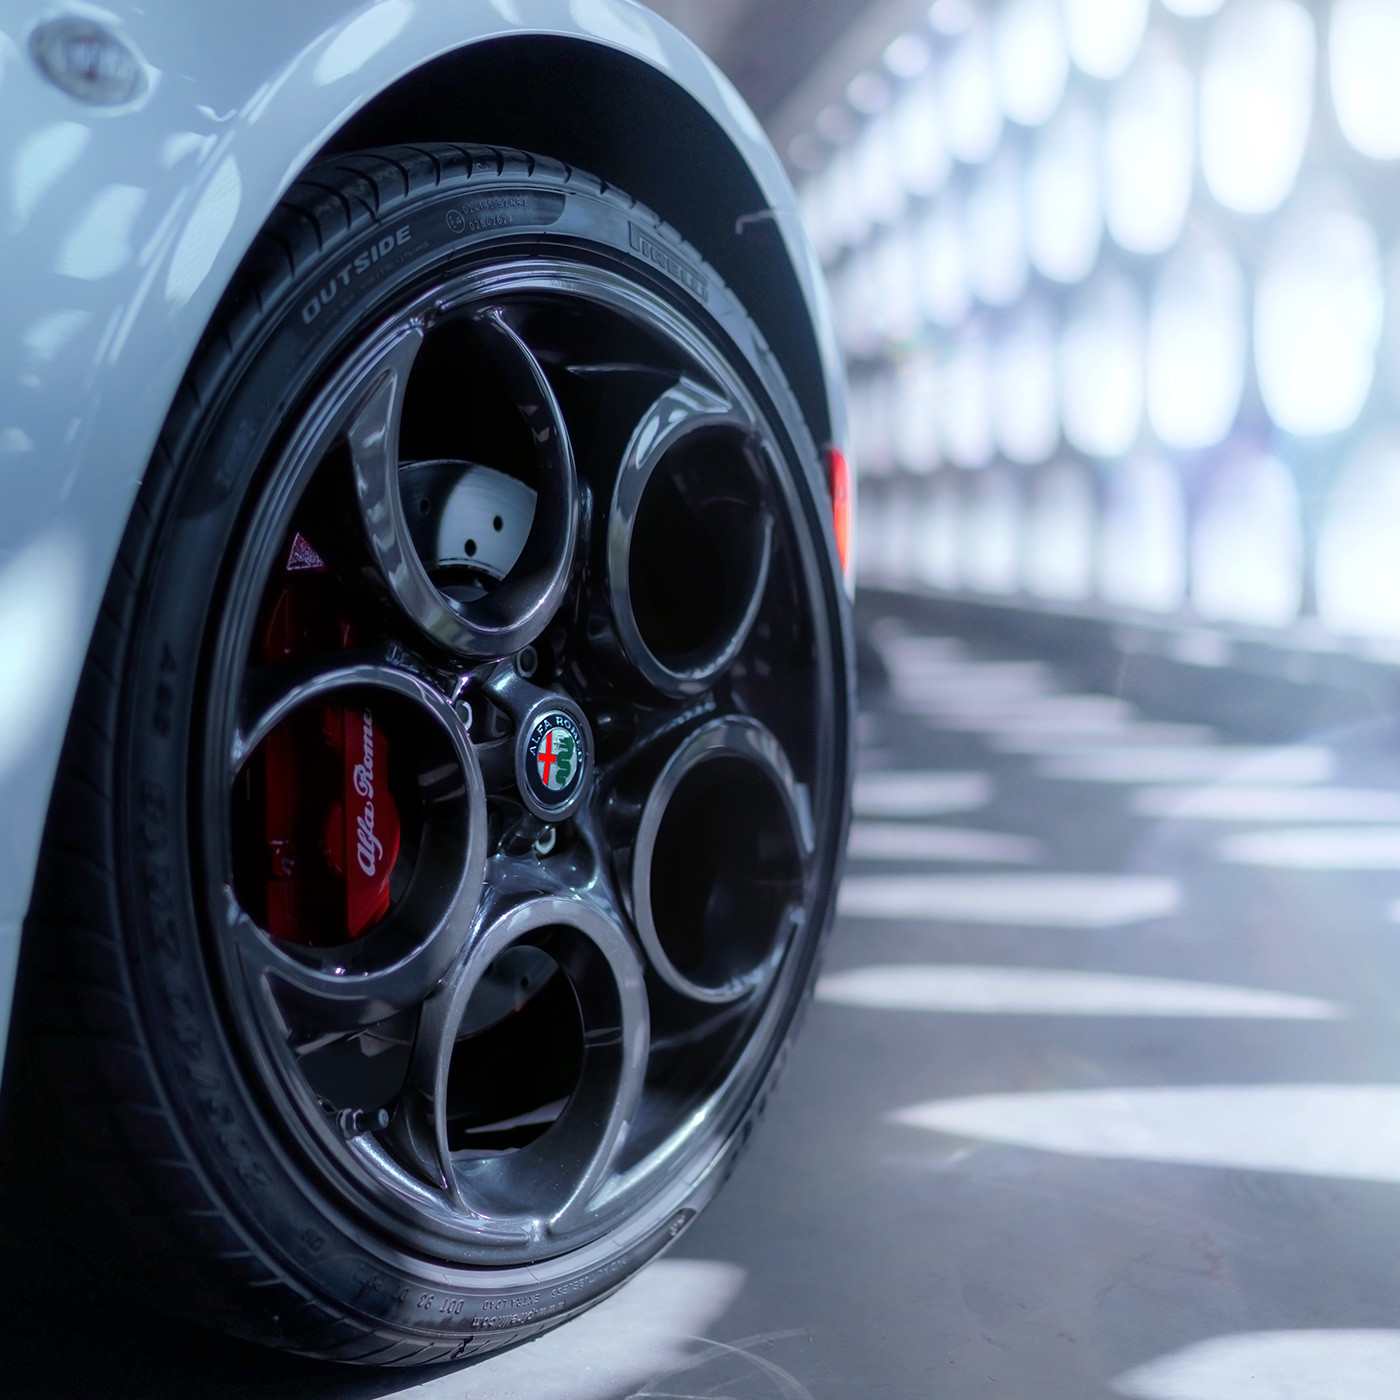 Alfa Romeo 4C spider dark 5-hole aluminum wheels and red brake caliper